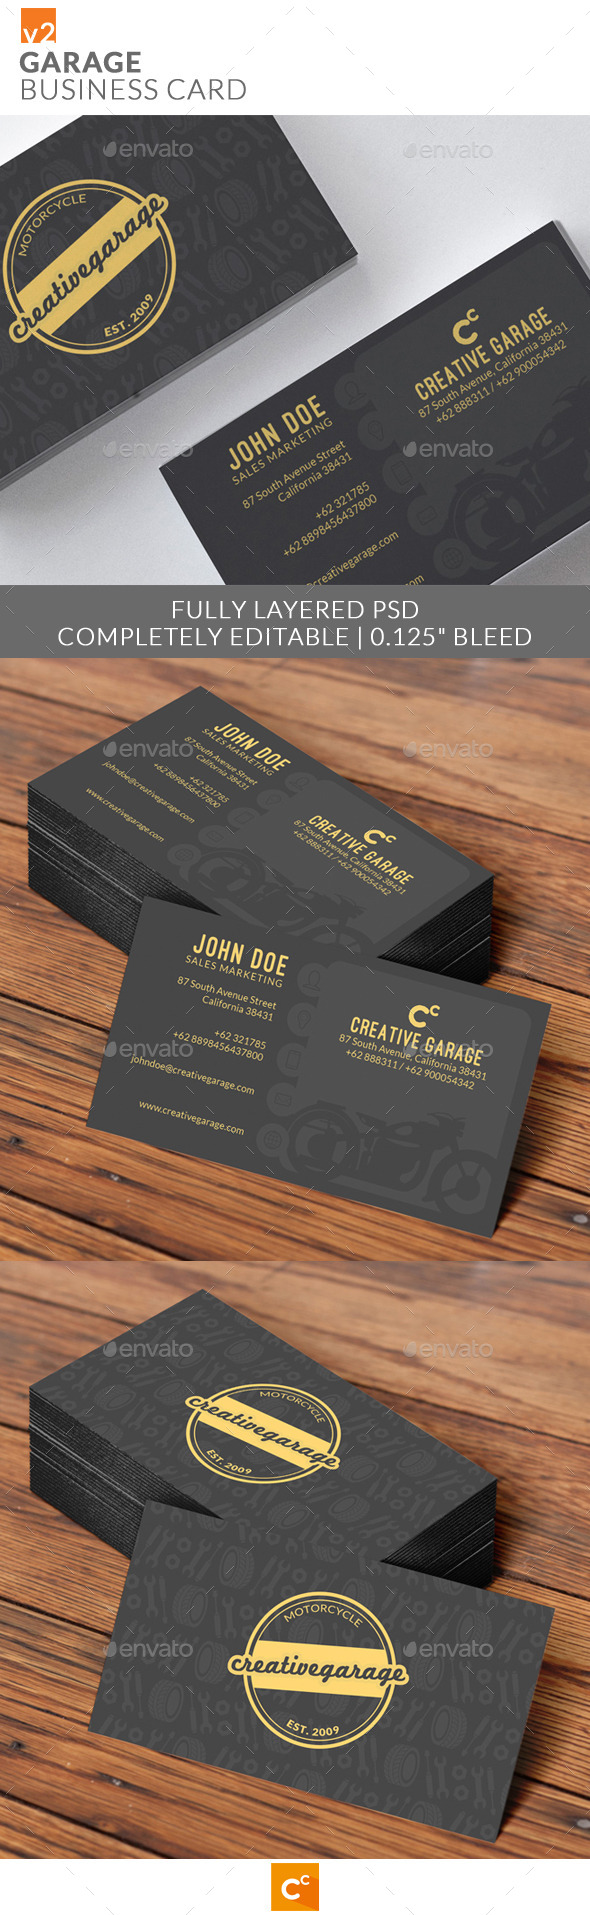 GraphicRiver Garage Business Cards v2 10432338